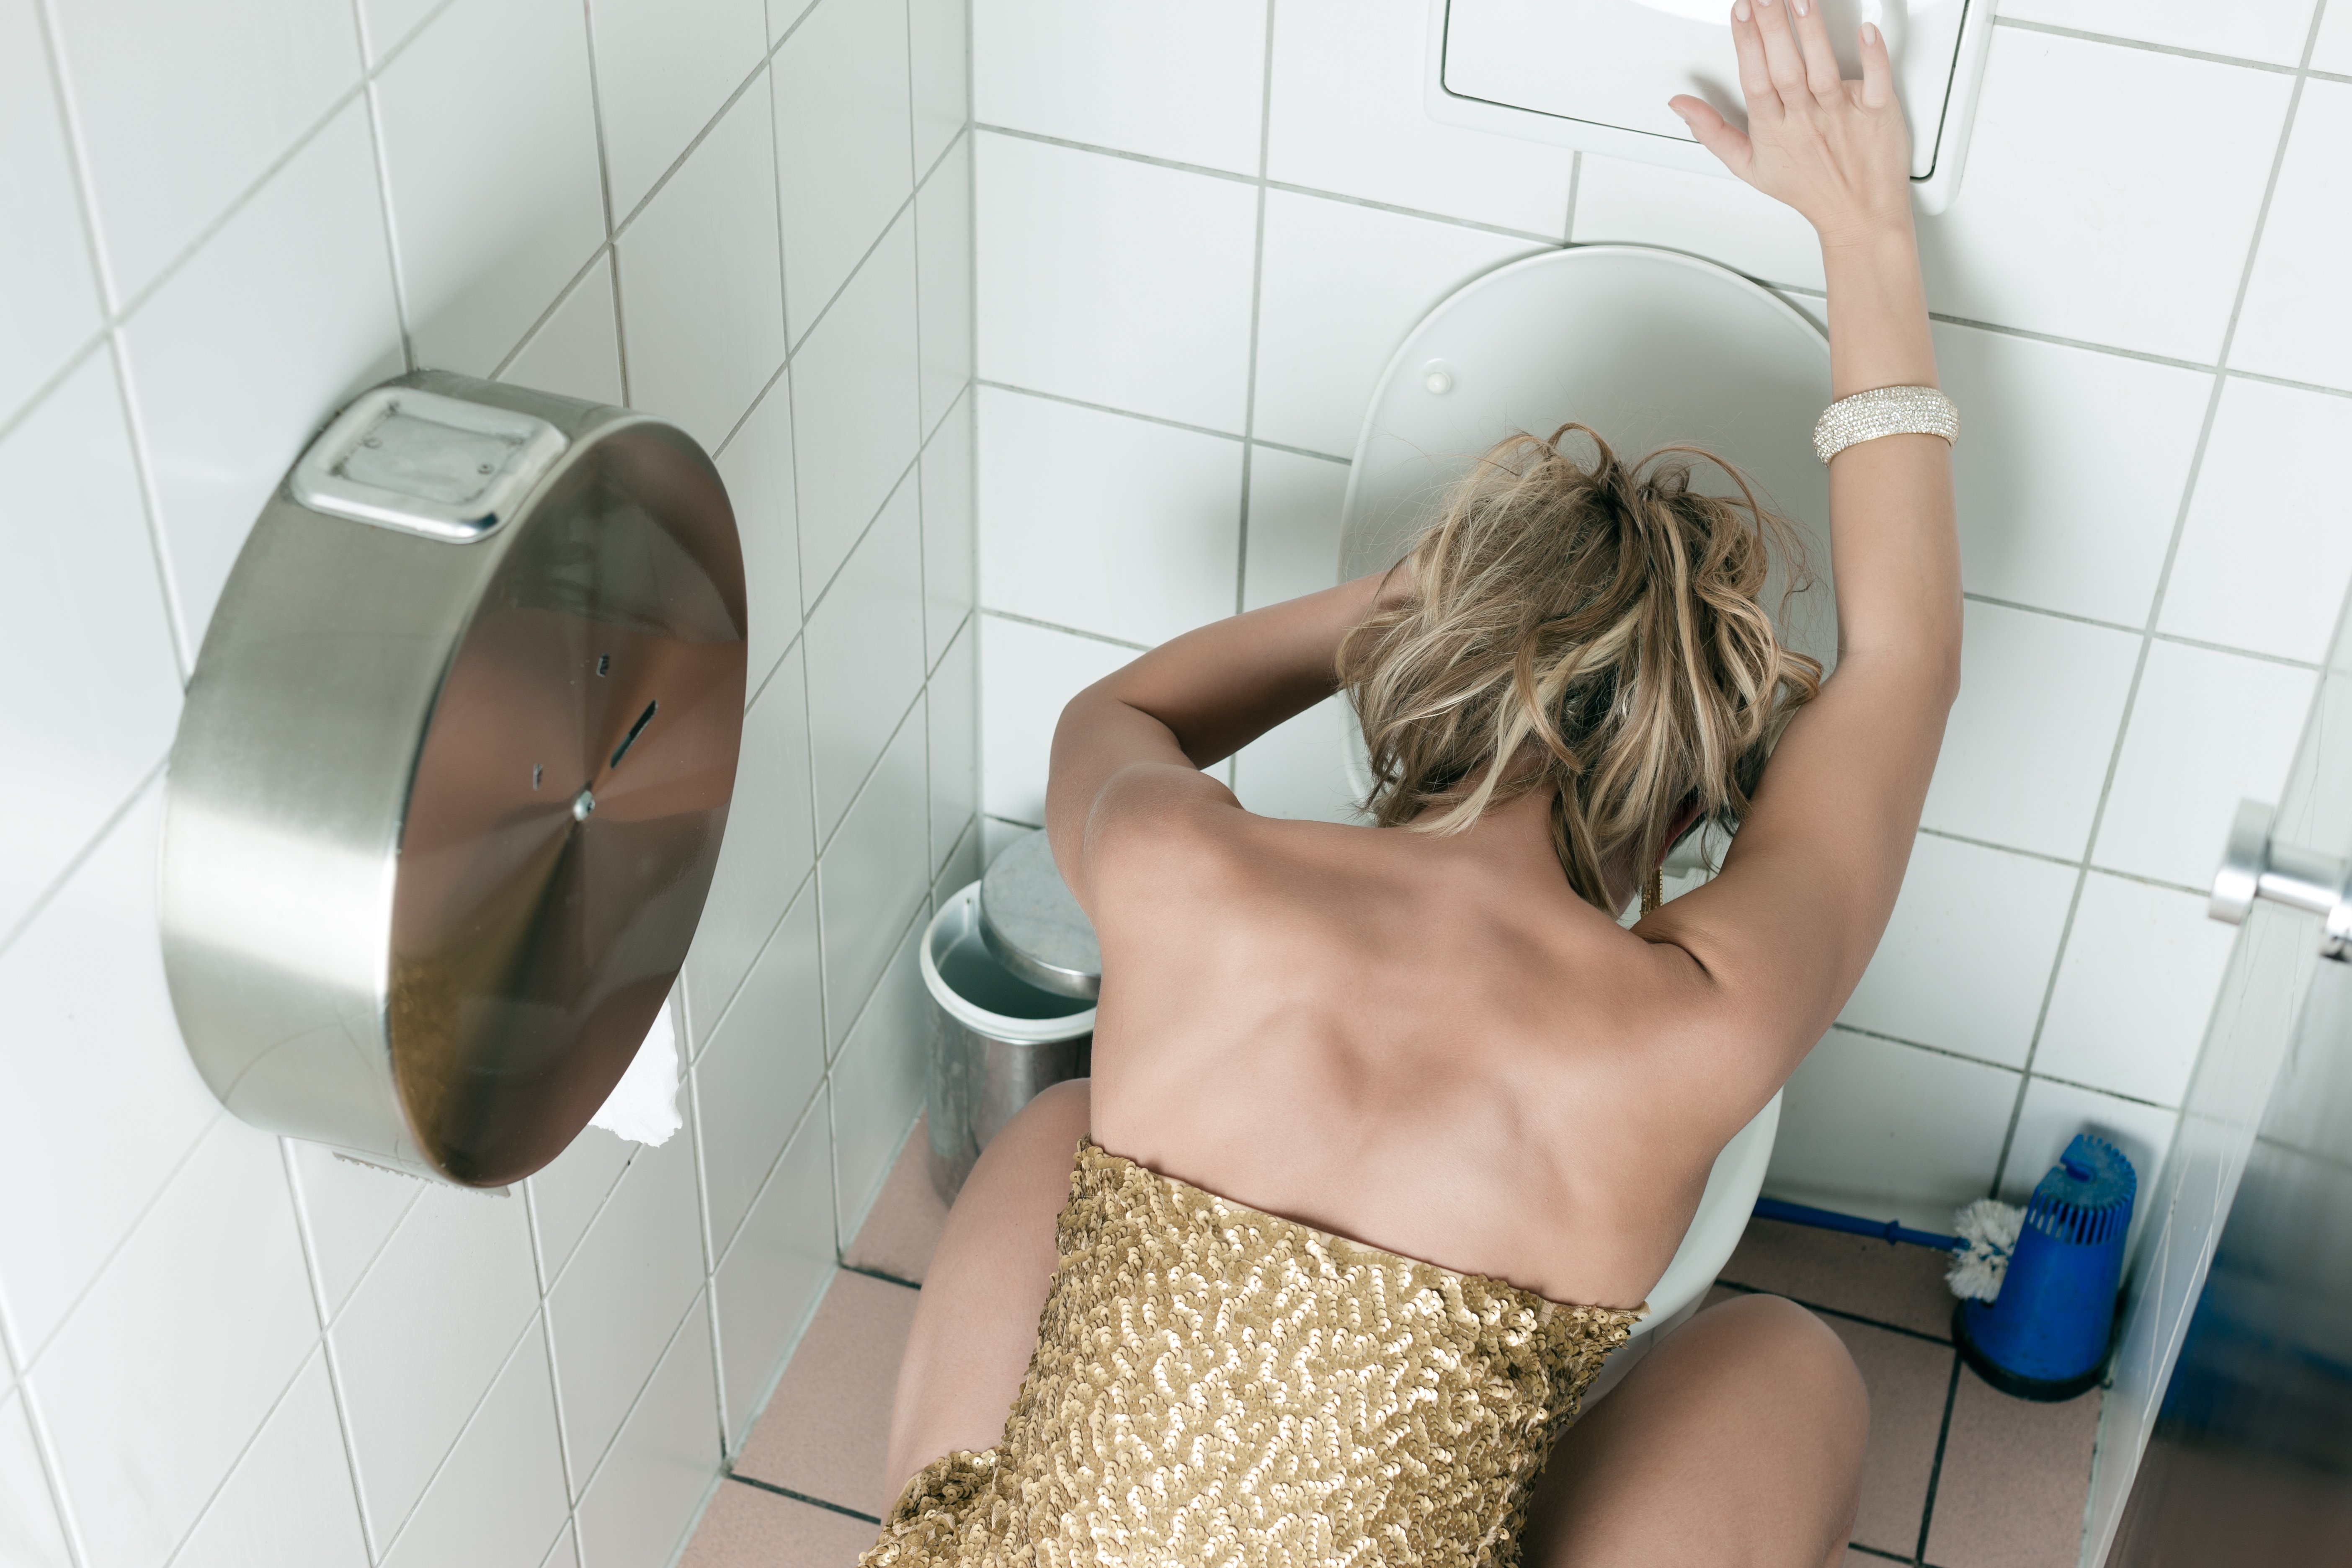 Woman puking in a toilet | Photo: Shutterstock